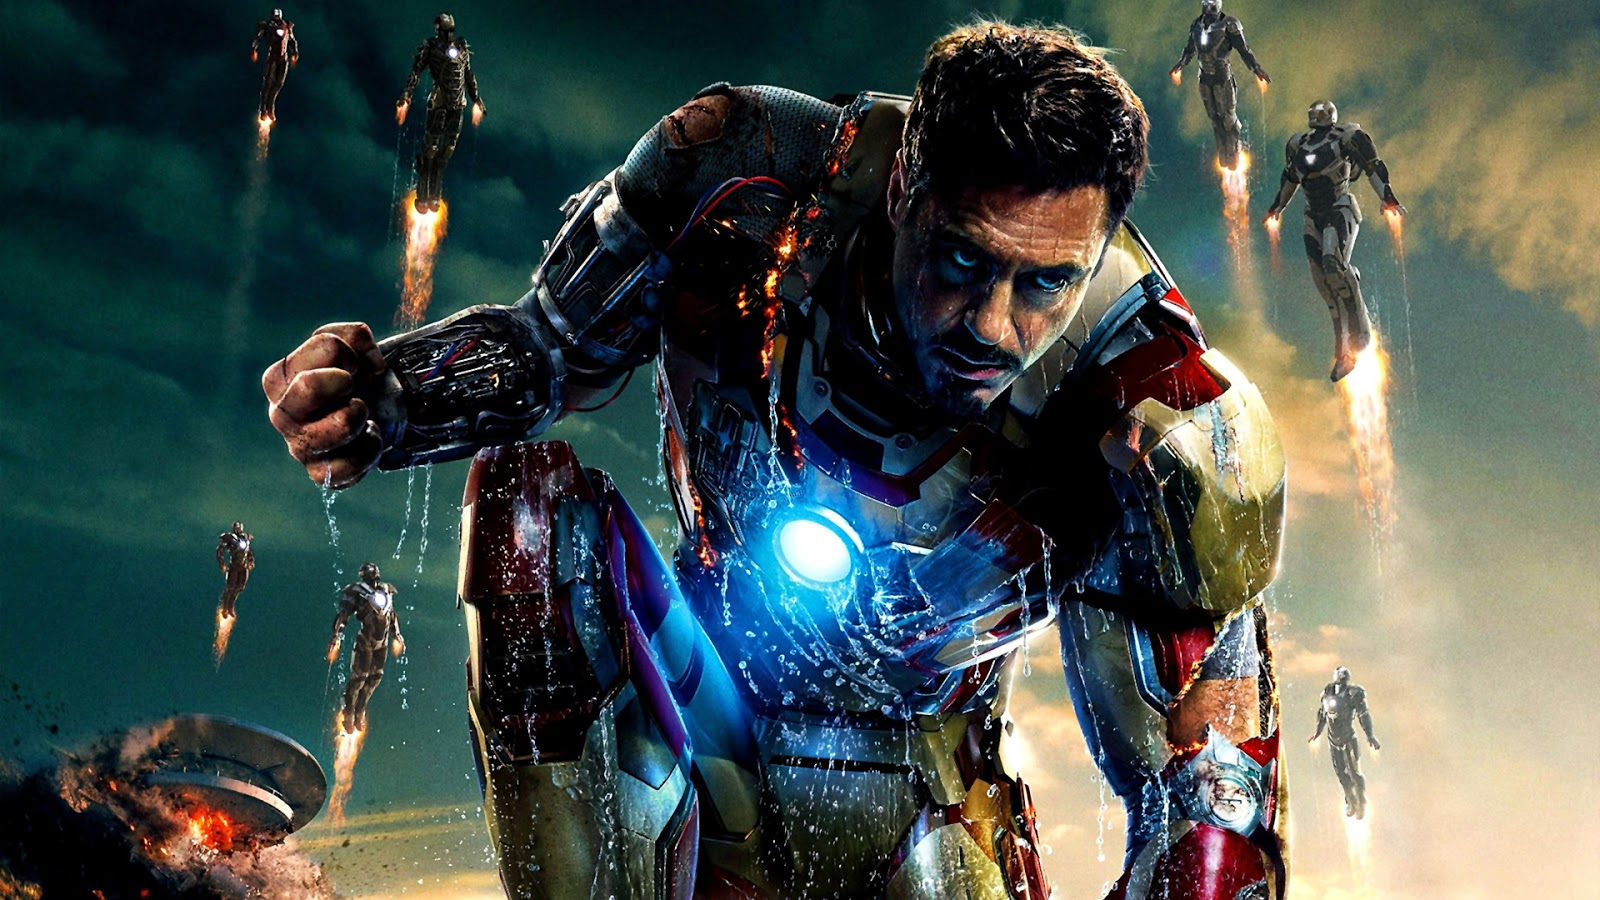 Iron Man 3 2013 HD wallpapers 1080p | HD Wallpapers (High ...